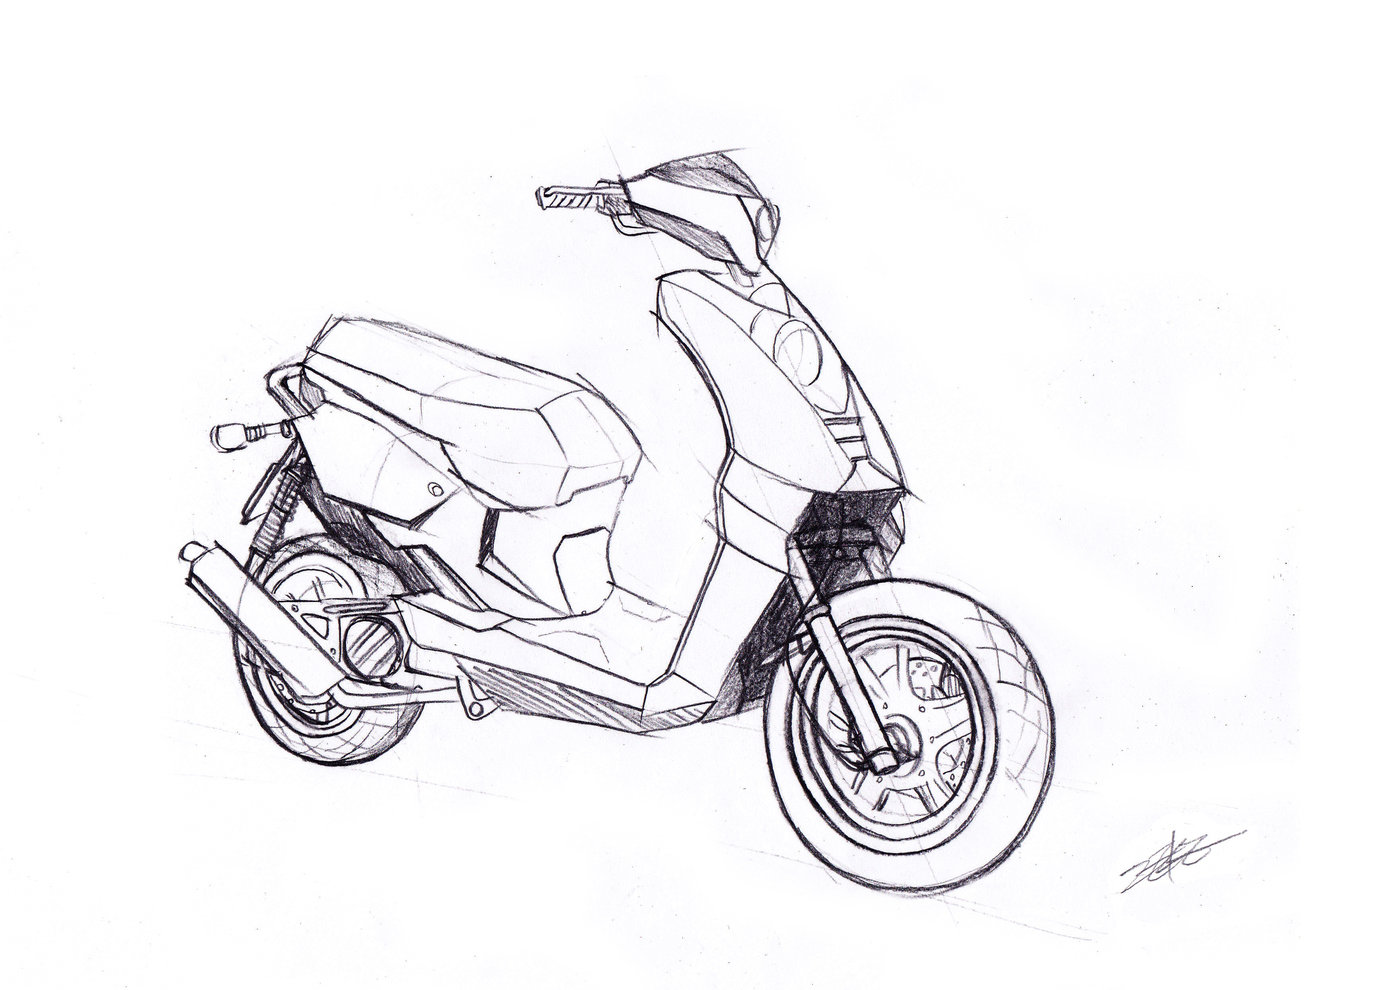 Motorcycle sketch and 2D rendering by Minghsien Wu at